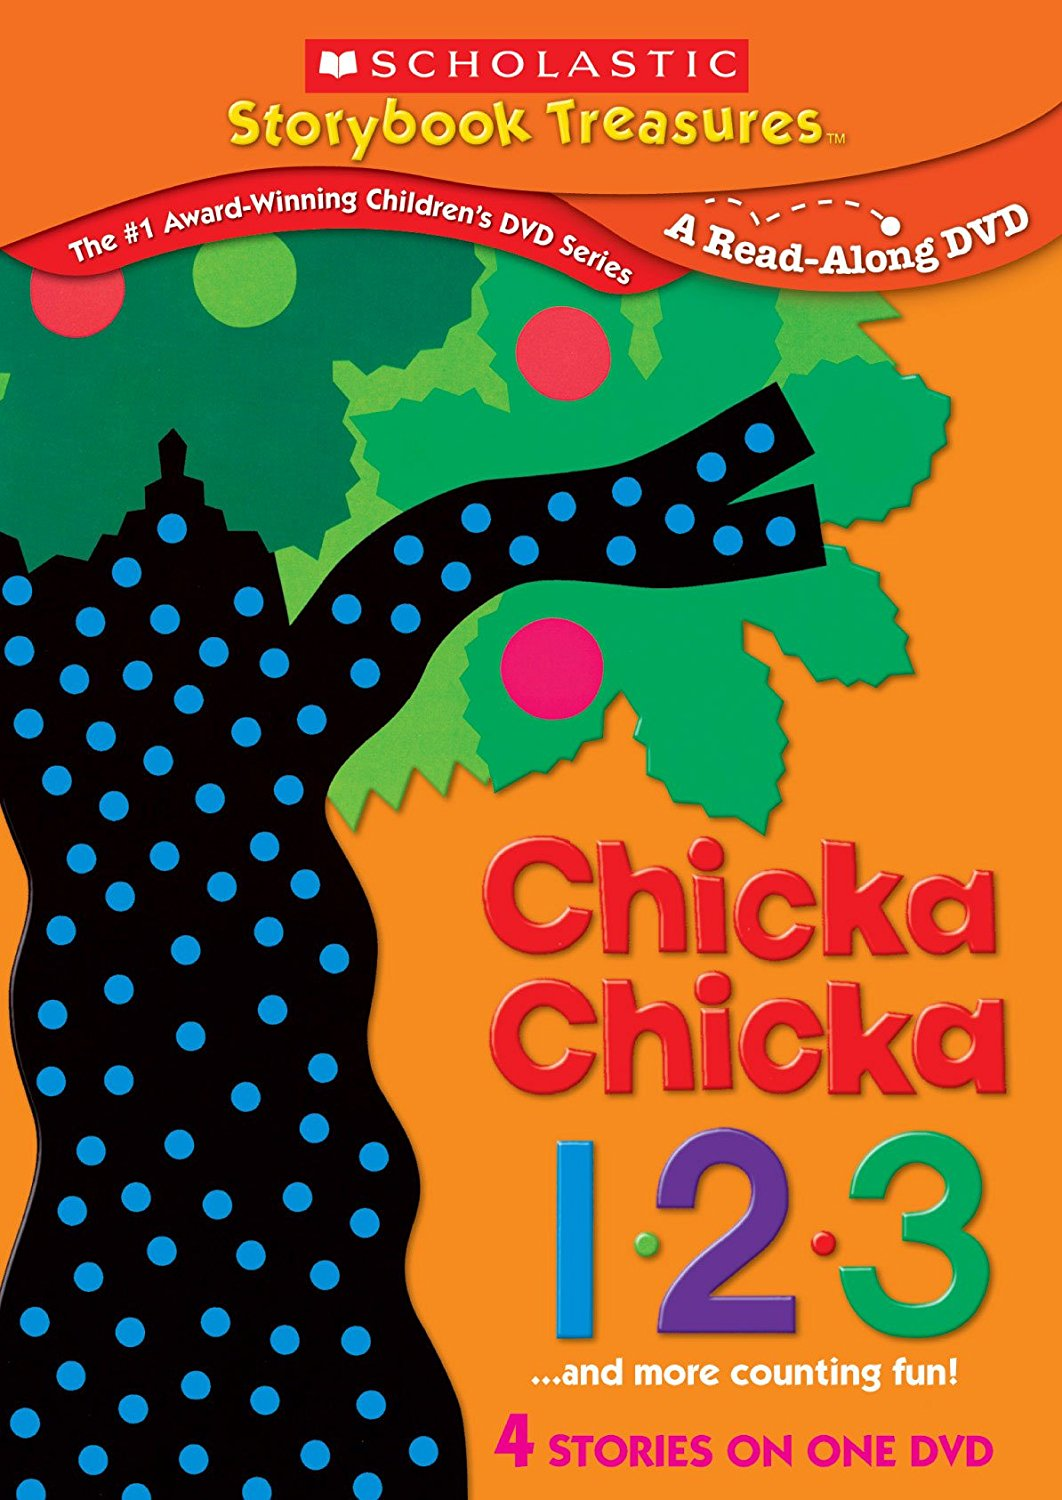 Chicka Chicka 123 And More Counting Fun - A Read Along Scholastic Storybook Treasures